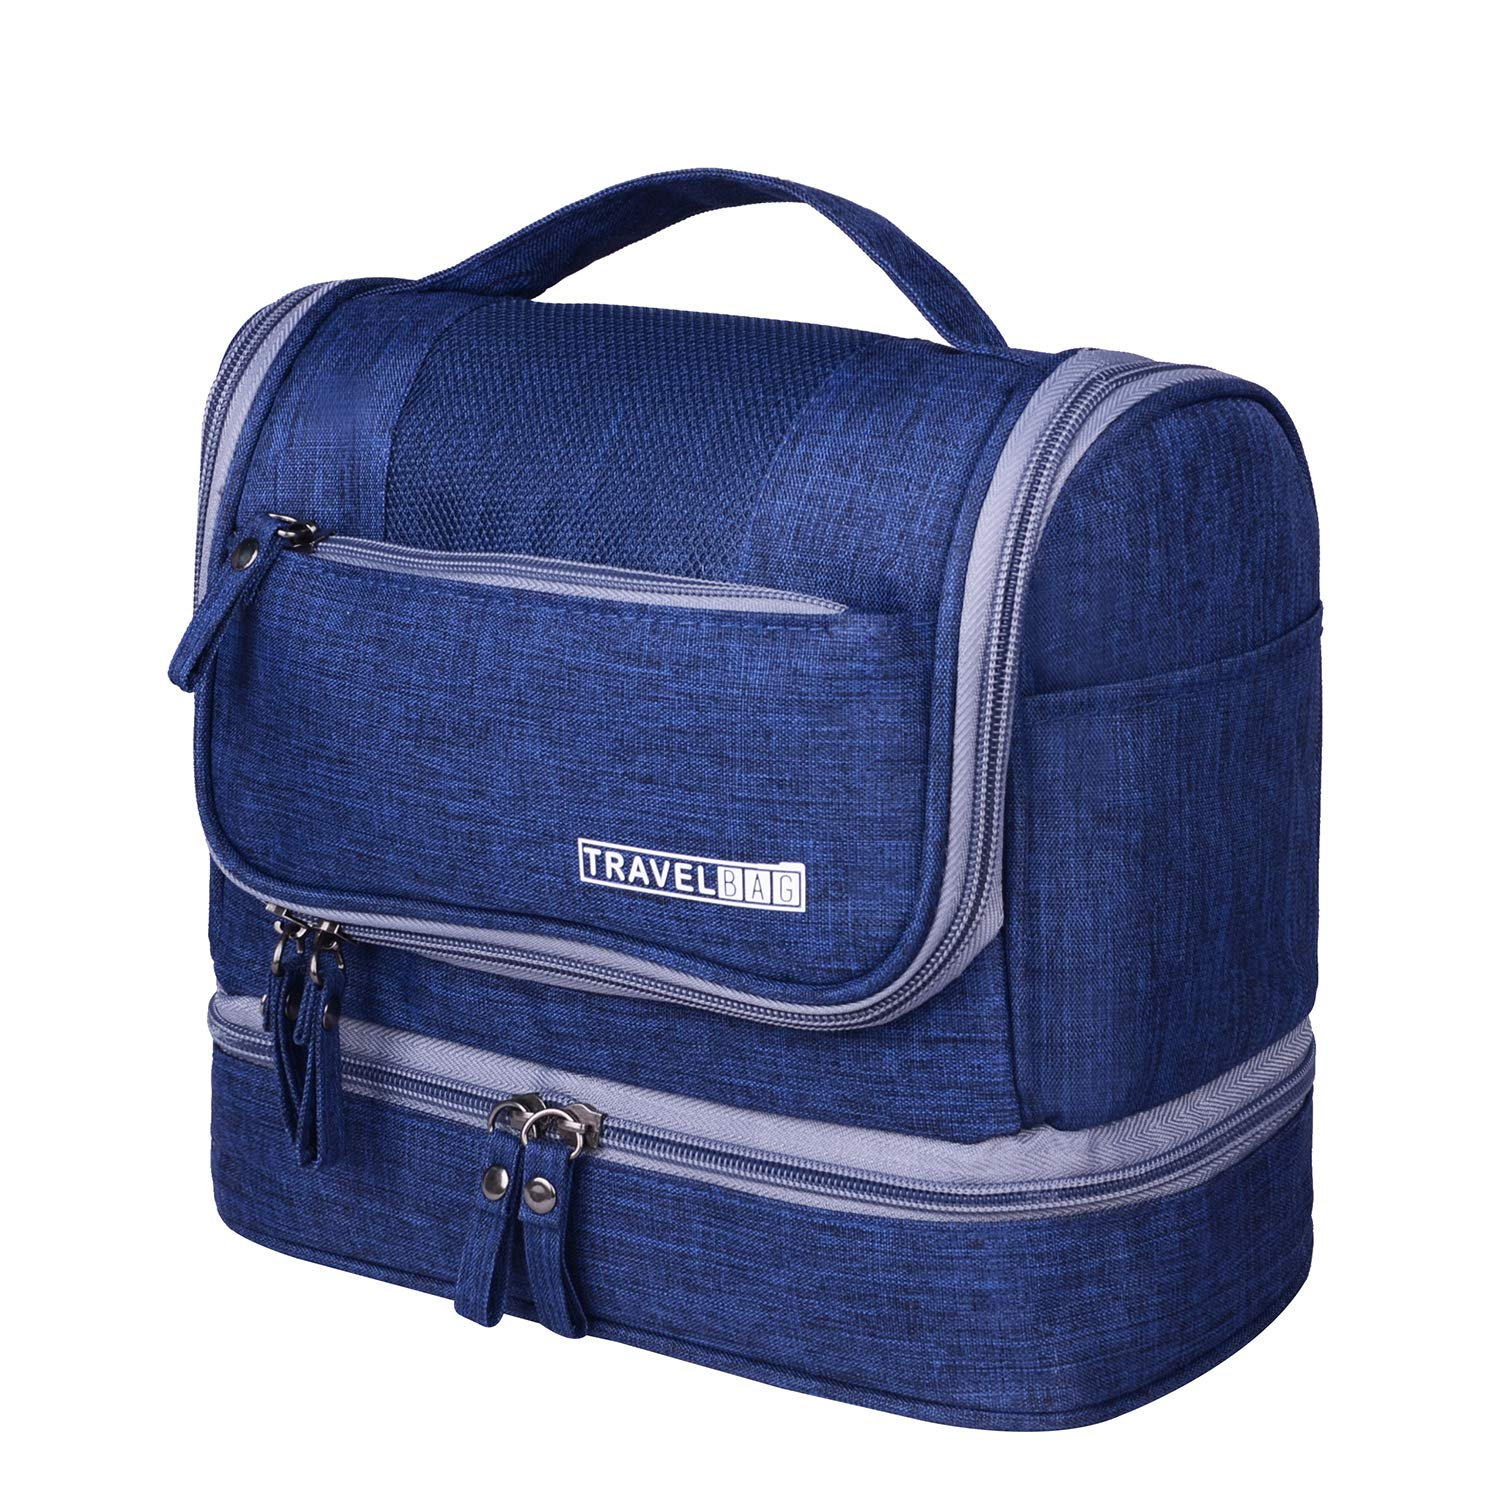 691be75744 Amazon.com   Hanging Travel Toiletry Bag for Women and Men